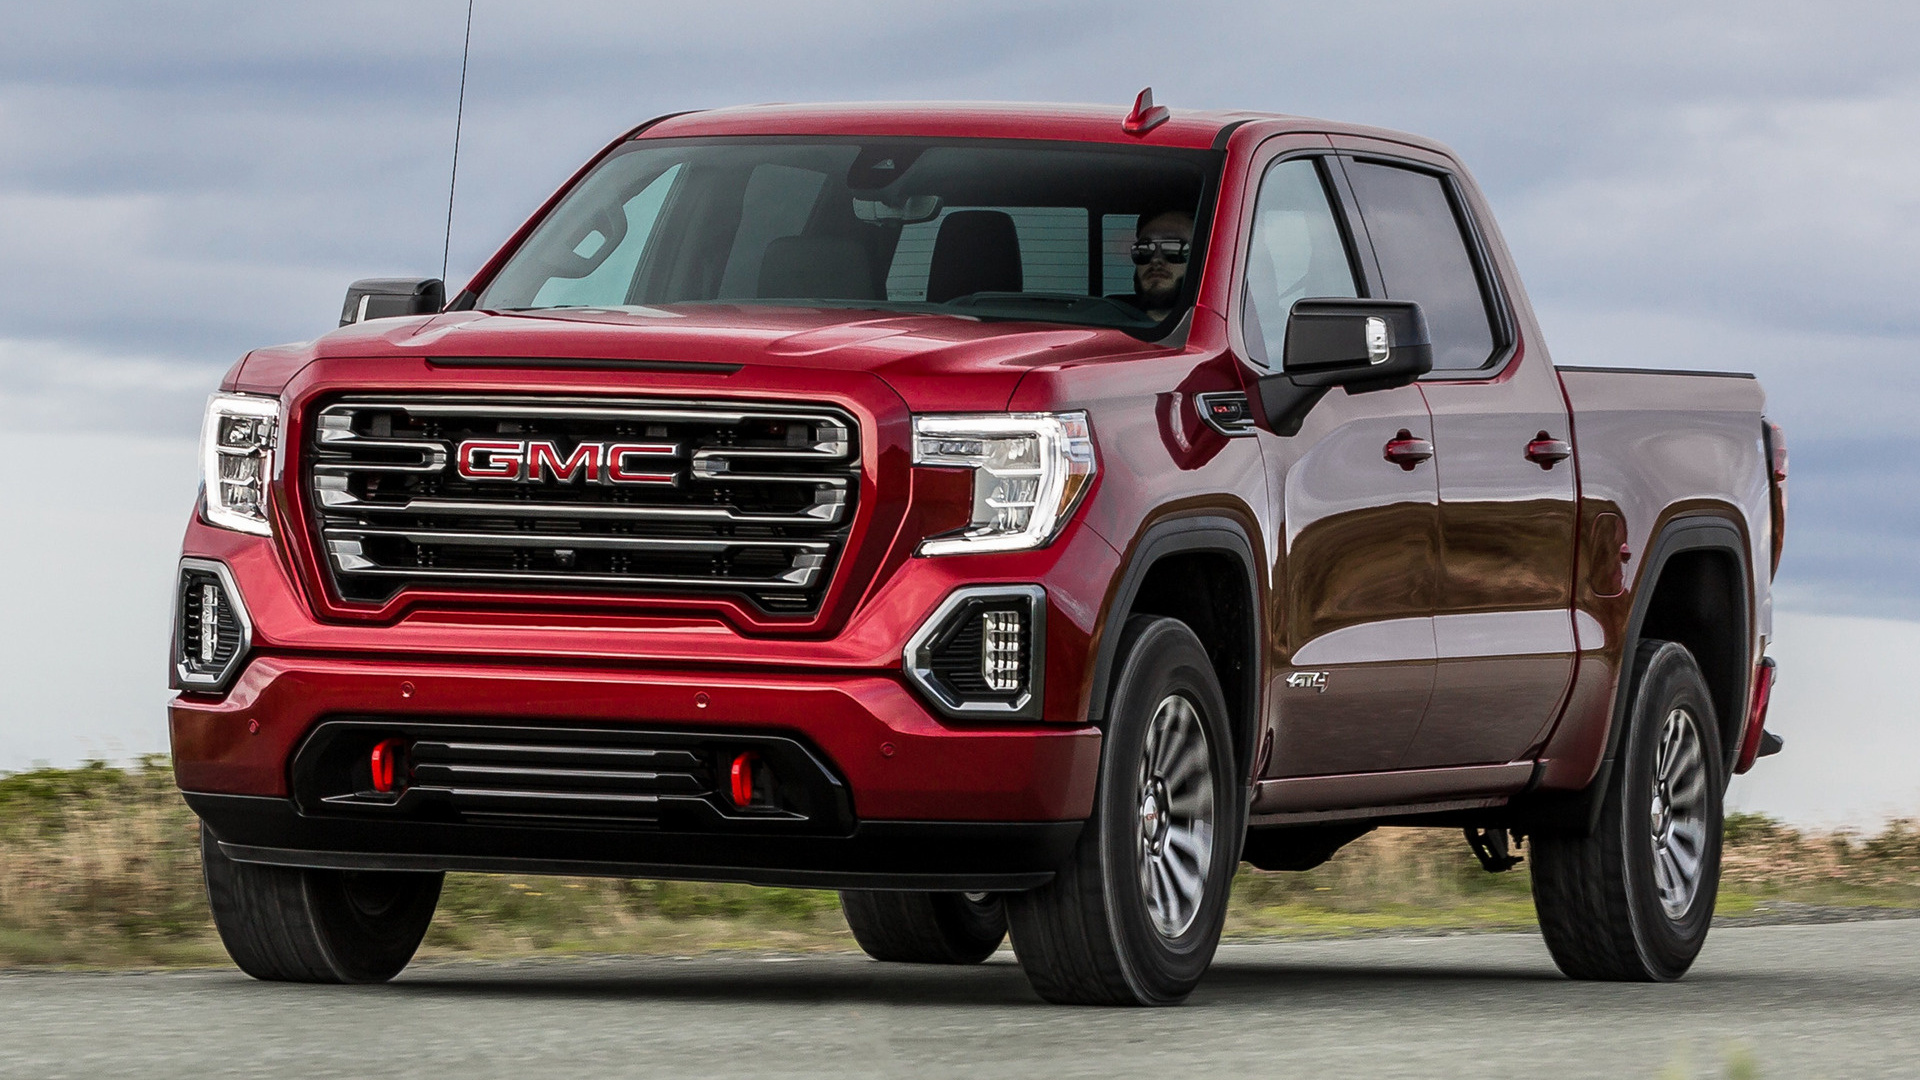 2019 GMC Sierra AT4 Crew Cab - Wallpapers and HD Images ...